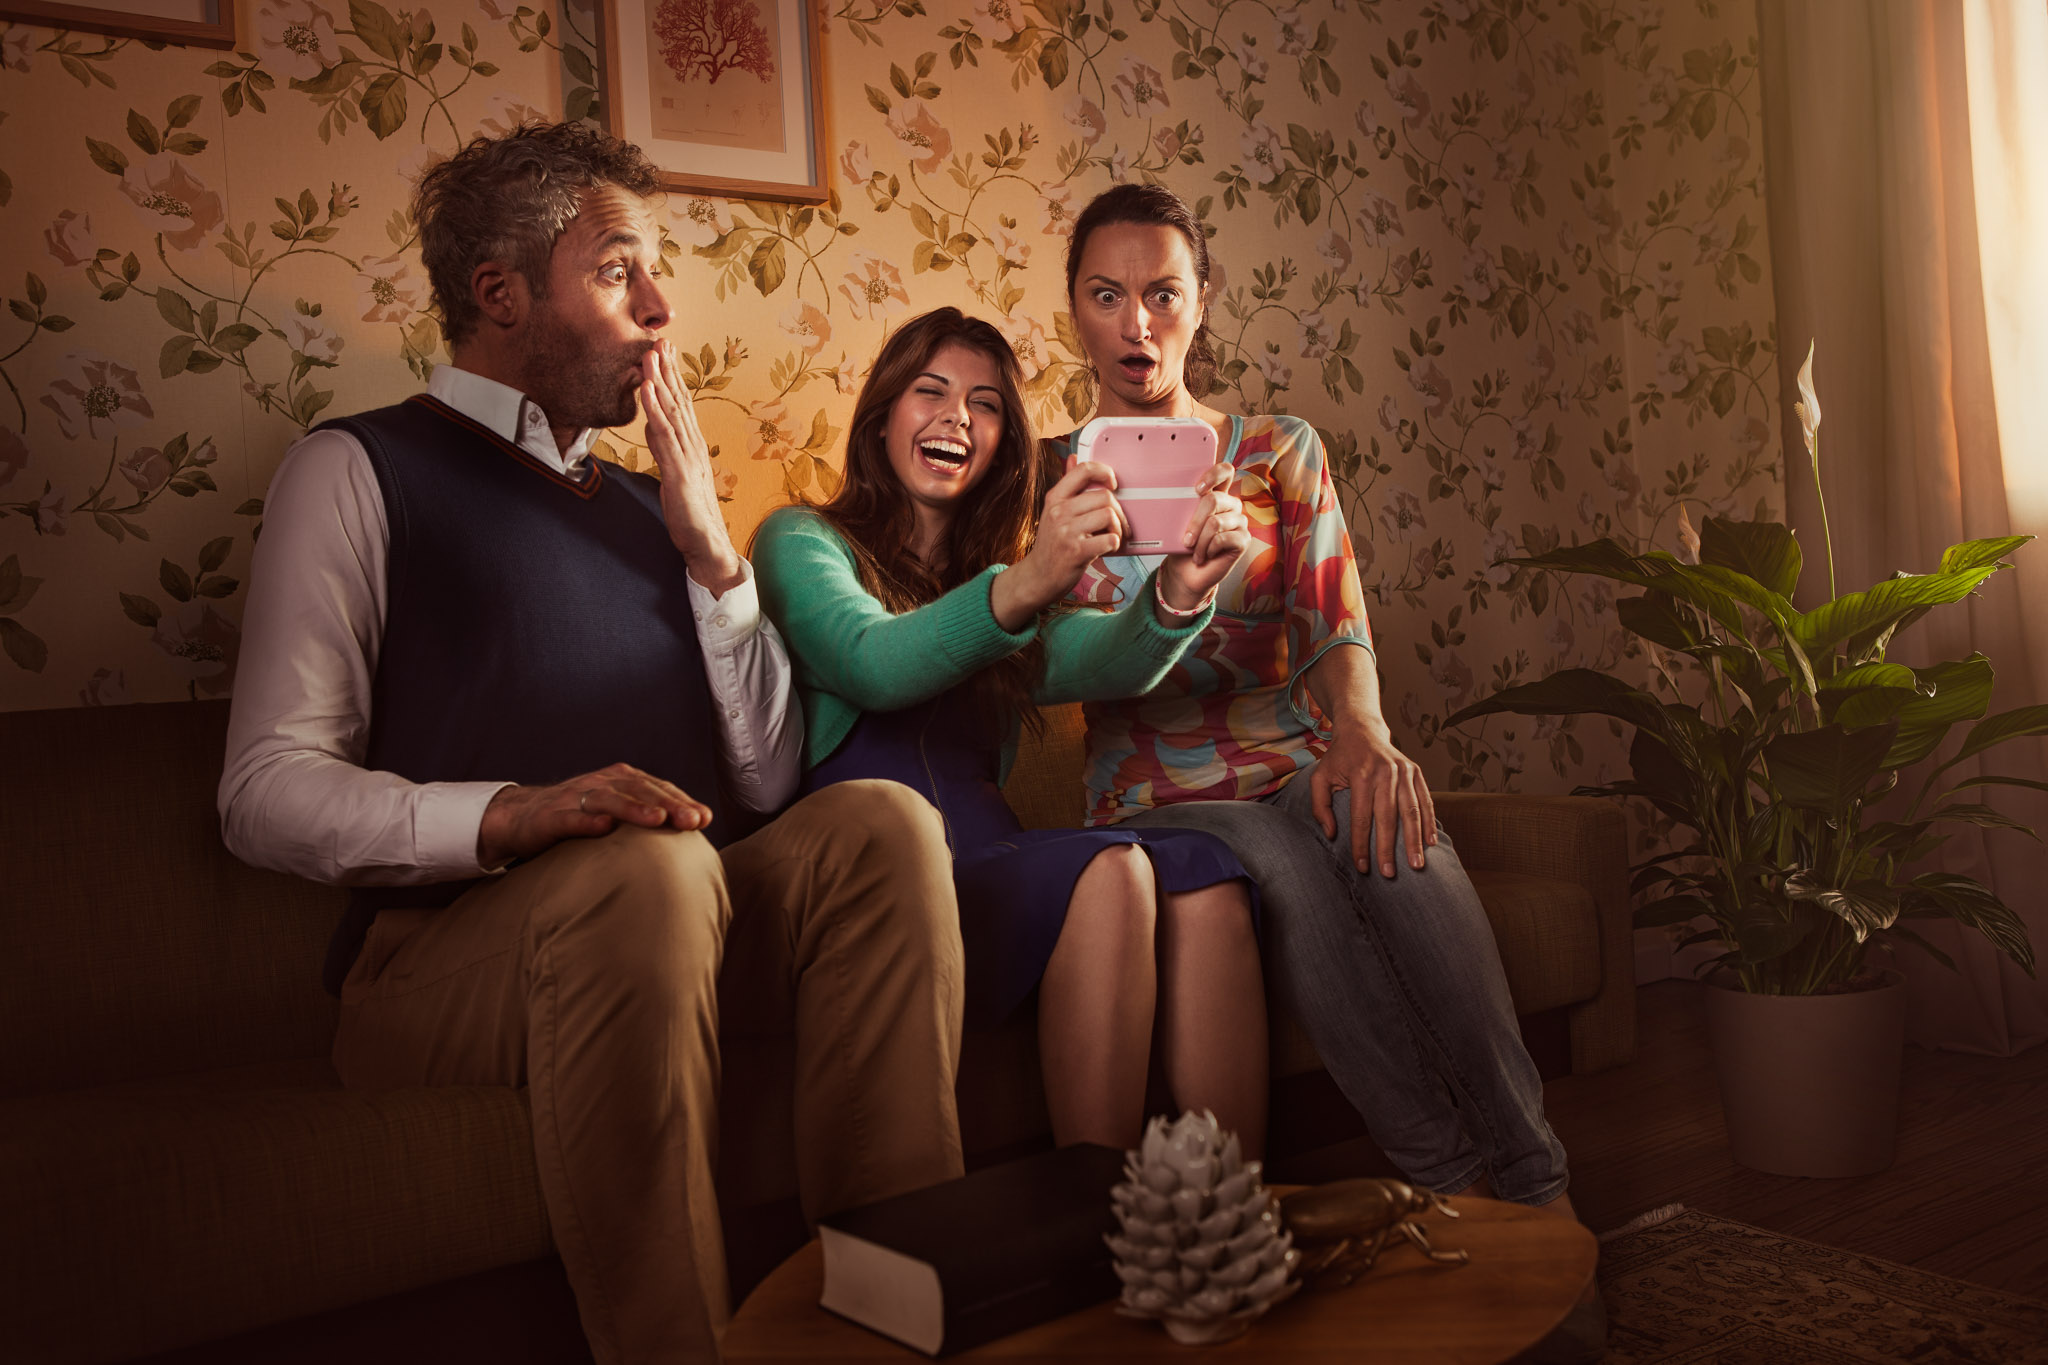 ©TomWoollard_Nintendo_2DS_TomodachiLife_gaming-advertising-lifestyle-family-surreal-dramatic-moody-concept.jpg